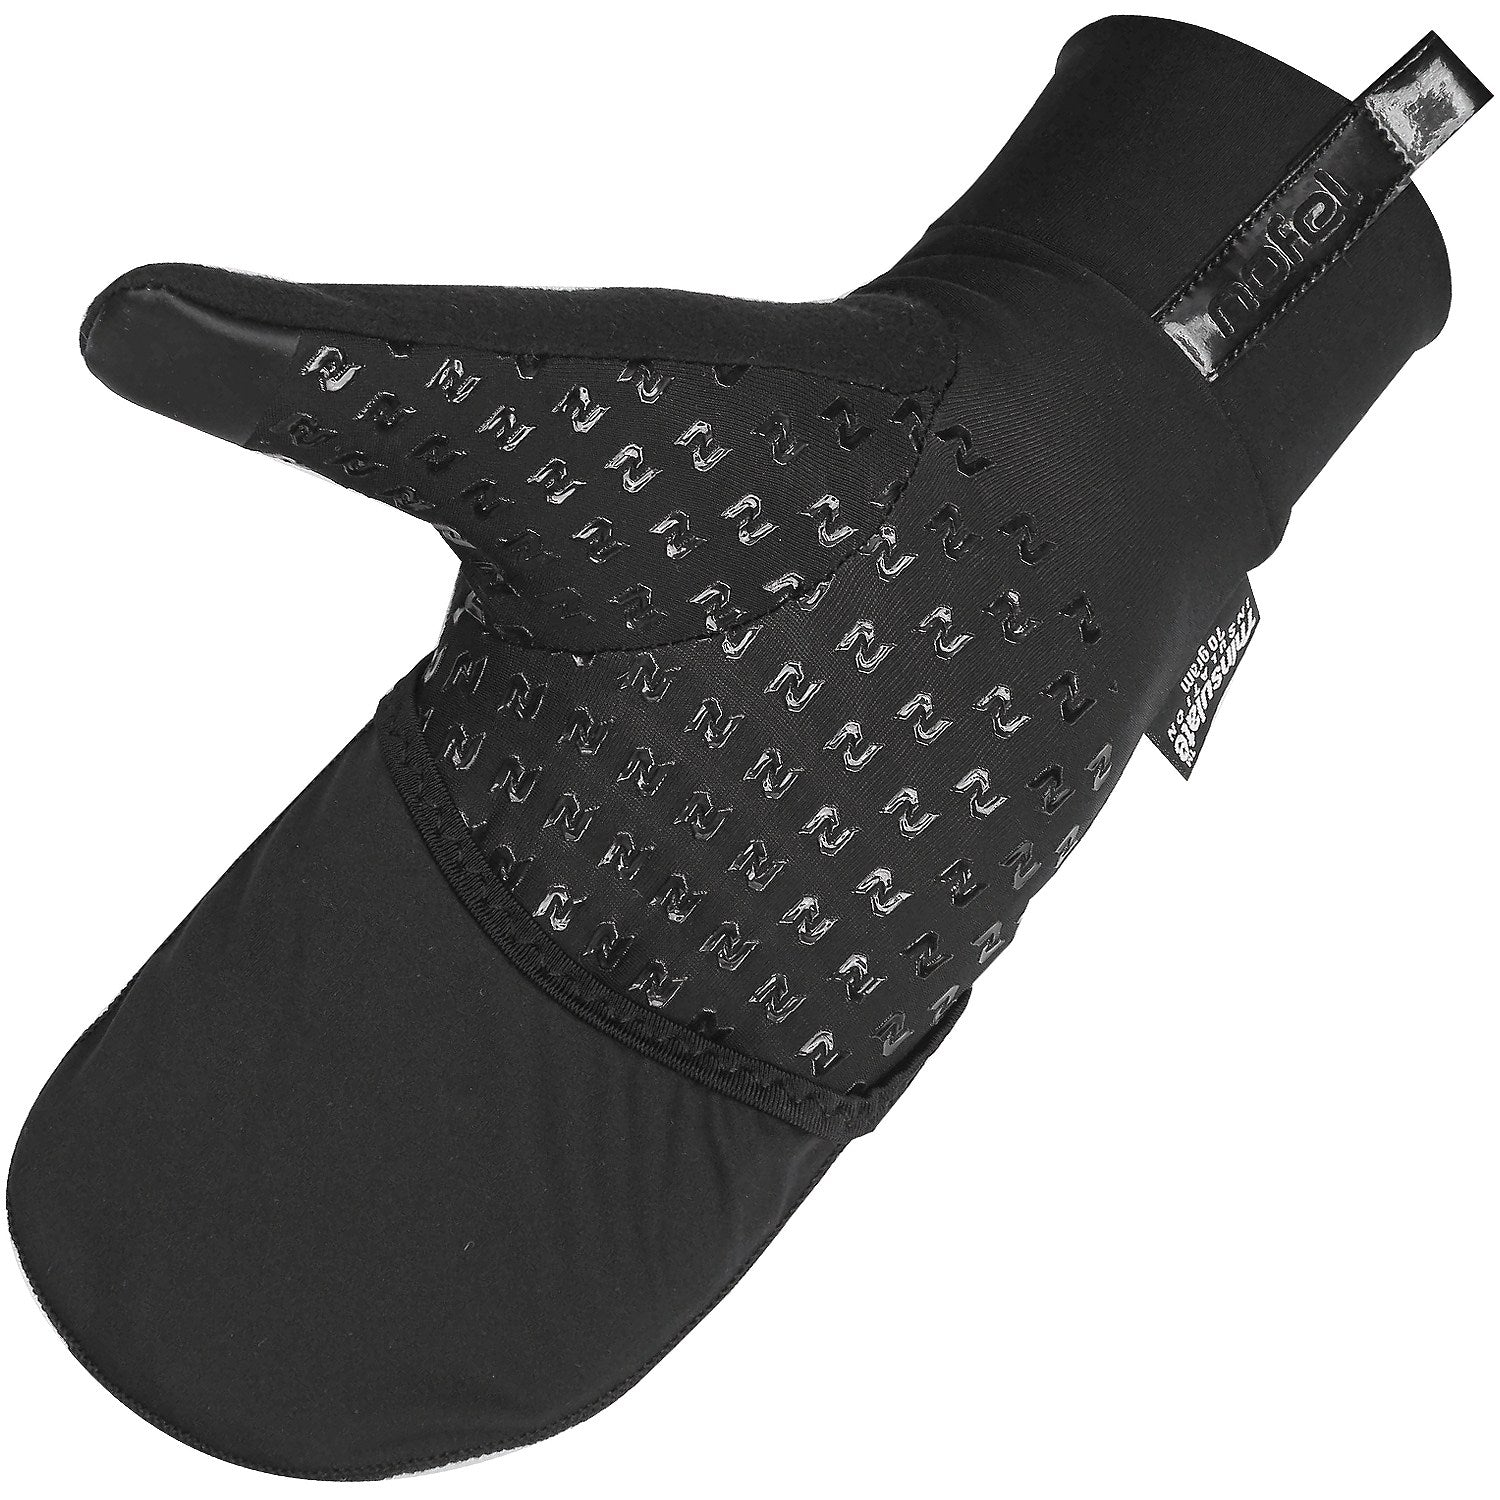 Nofel Flash Mitten Black